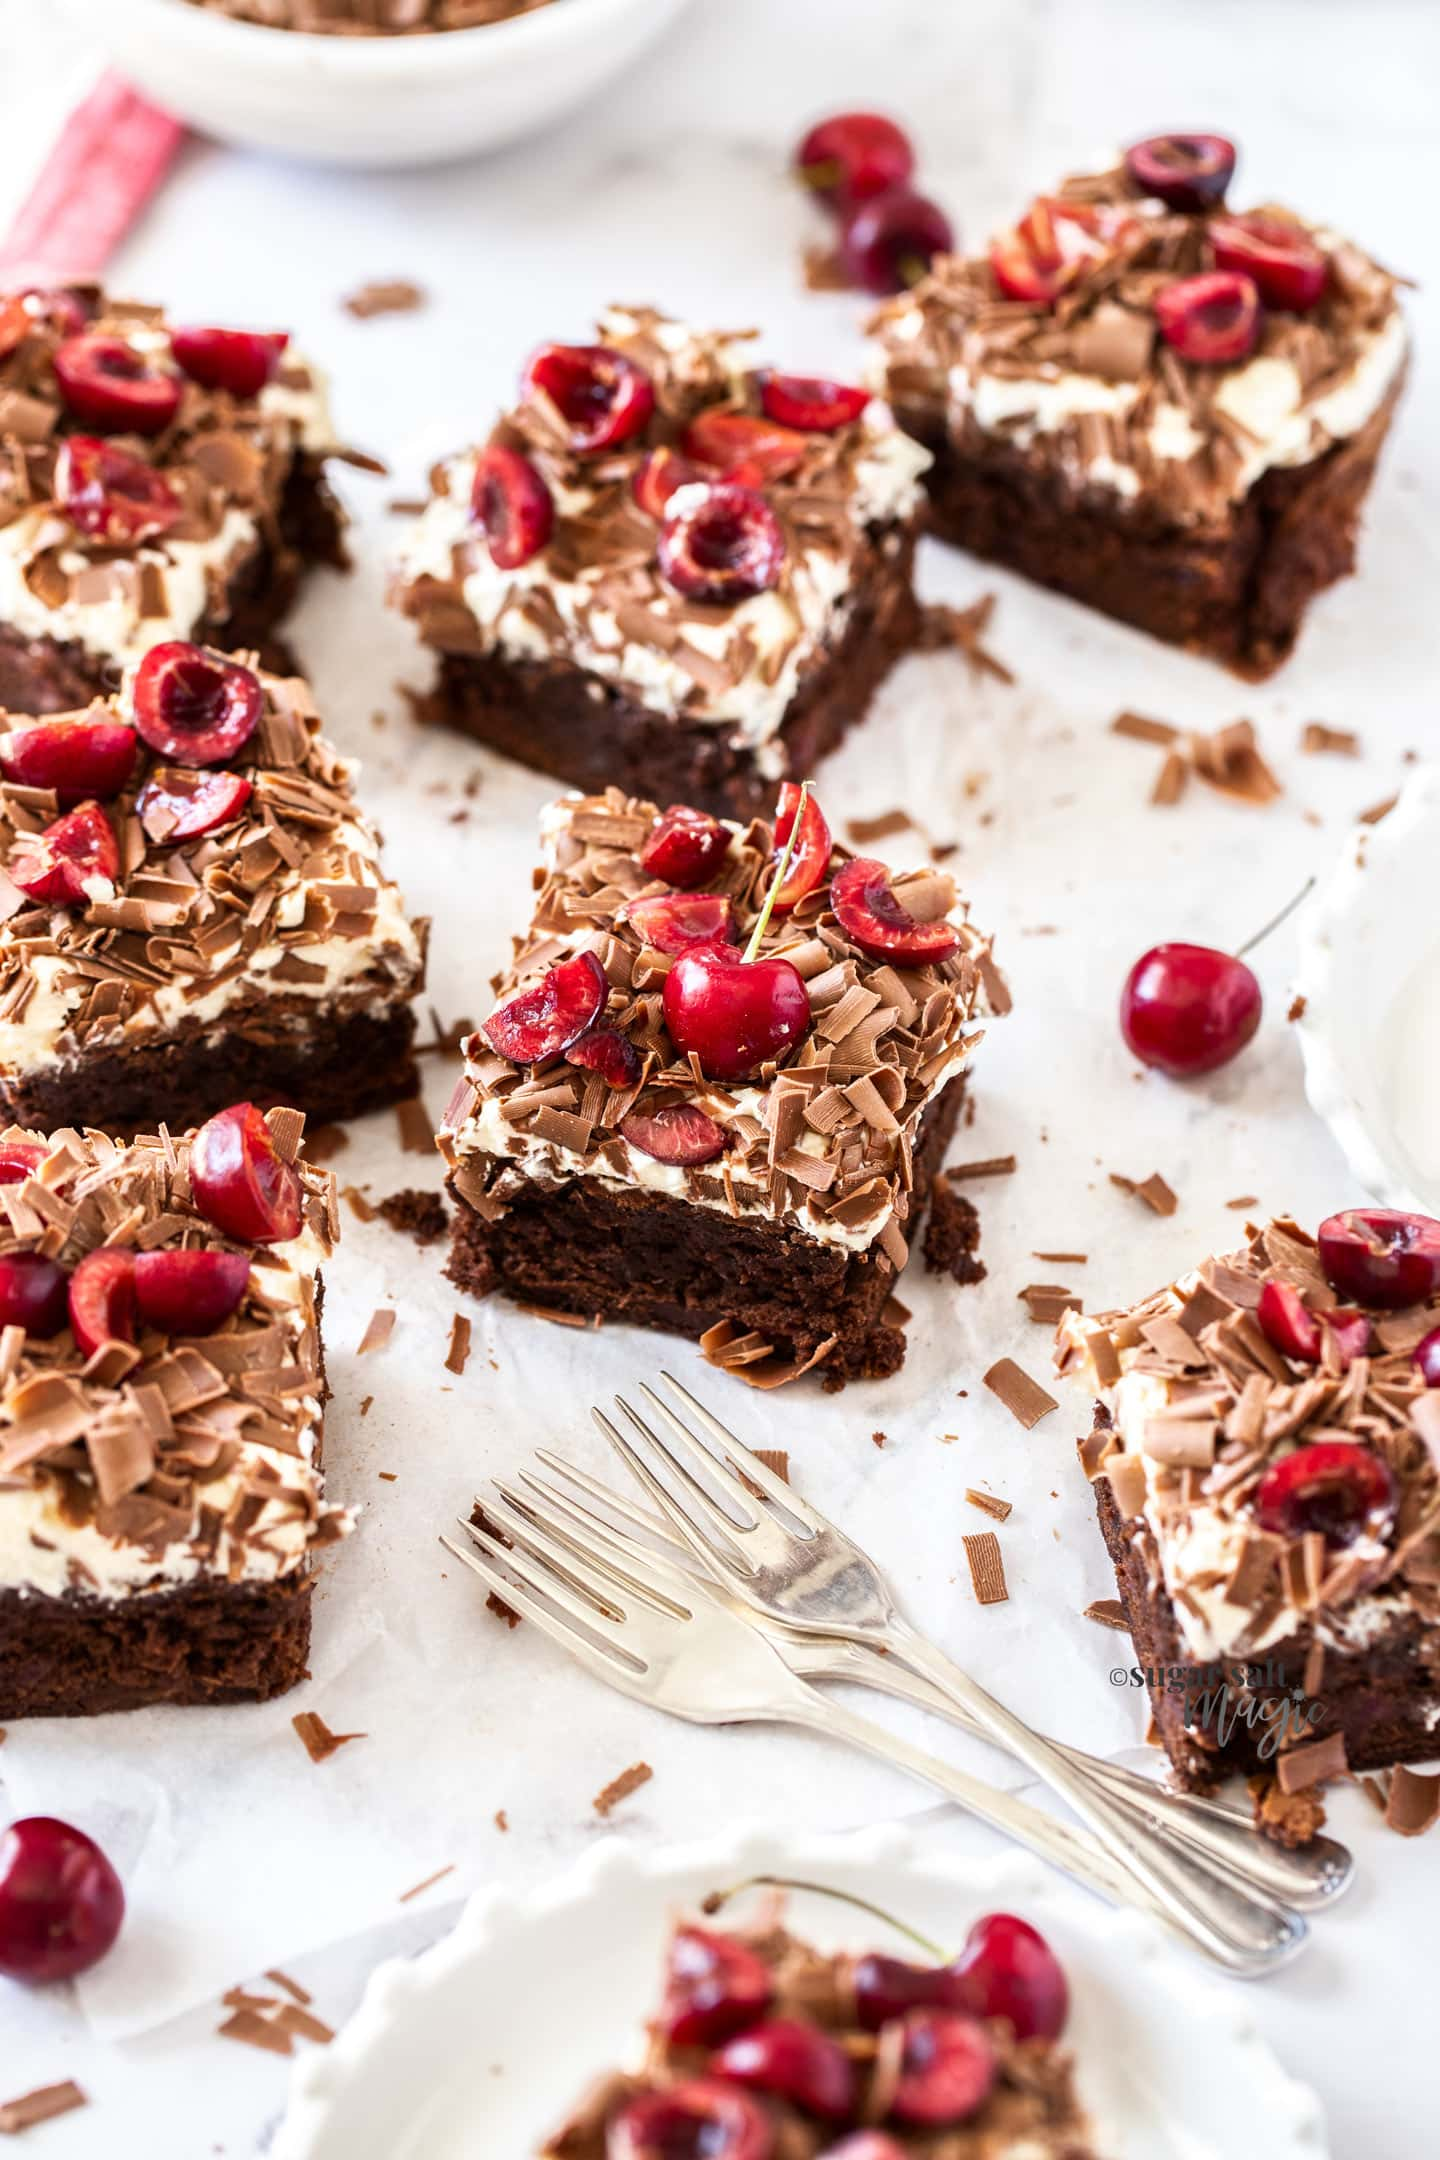 A batch of brownies topped with cream, cherries and chocolate shavings